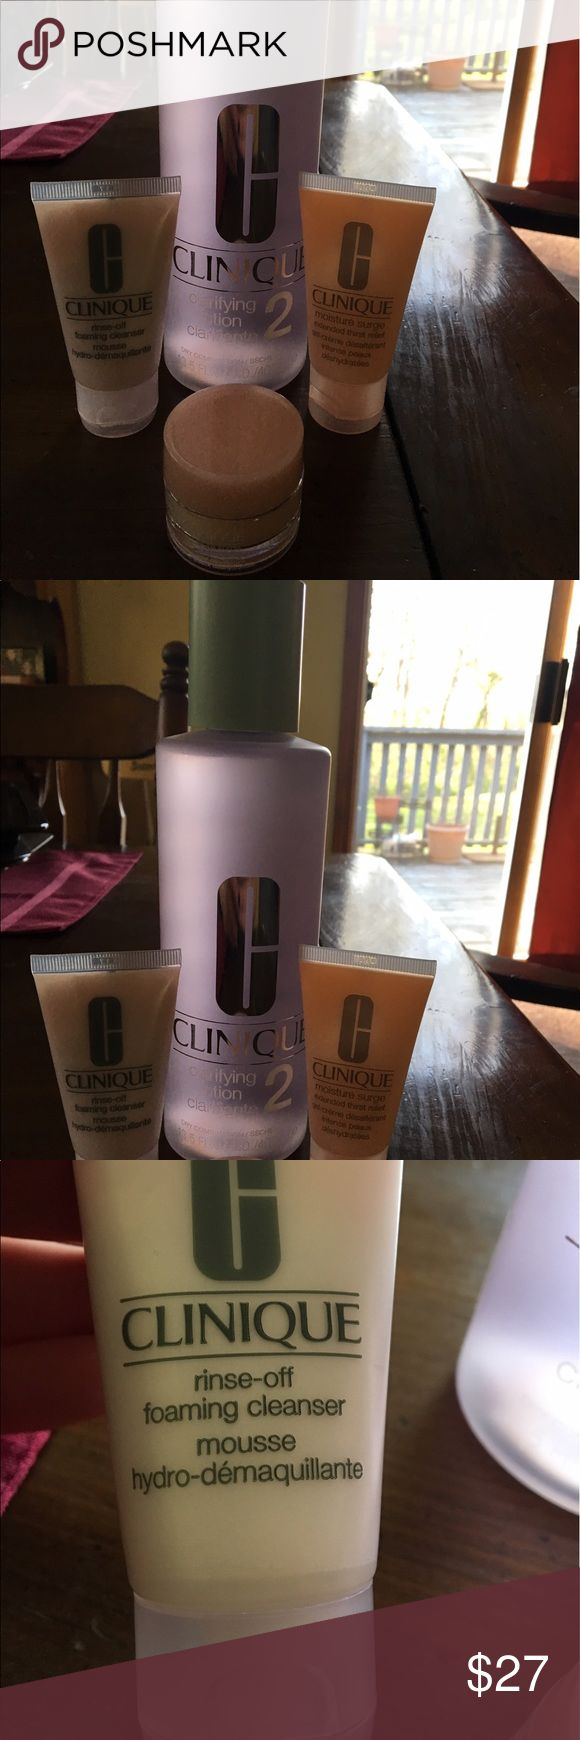 Clinique four piece skincare set One 13.5 fluid oz Step 2 clarifying lotion; one travel size moisture surge extended thirst relief; one travel size rinse-off foaming cleanser mousse; and one mini jar of moisture surge extended thirst relief. Never opened. Never used. Just received these this week so brand new. FREE makeup bag with purchase!! Make an offer! Clinique Makeup